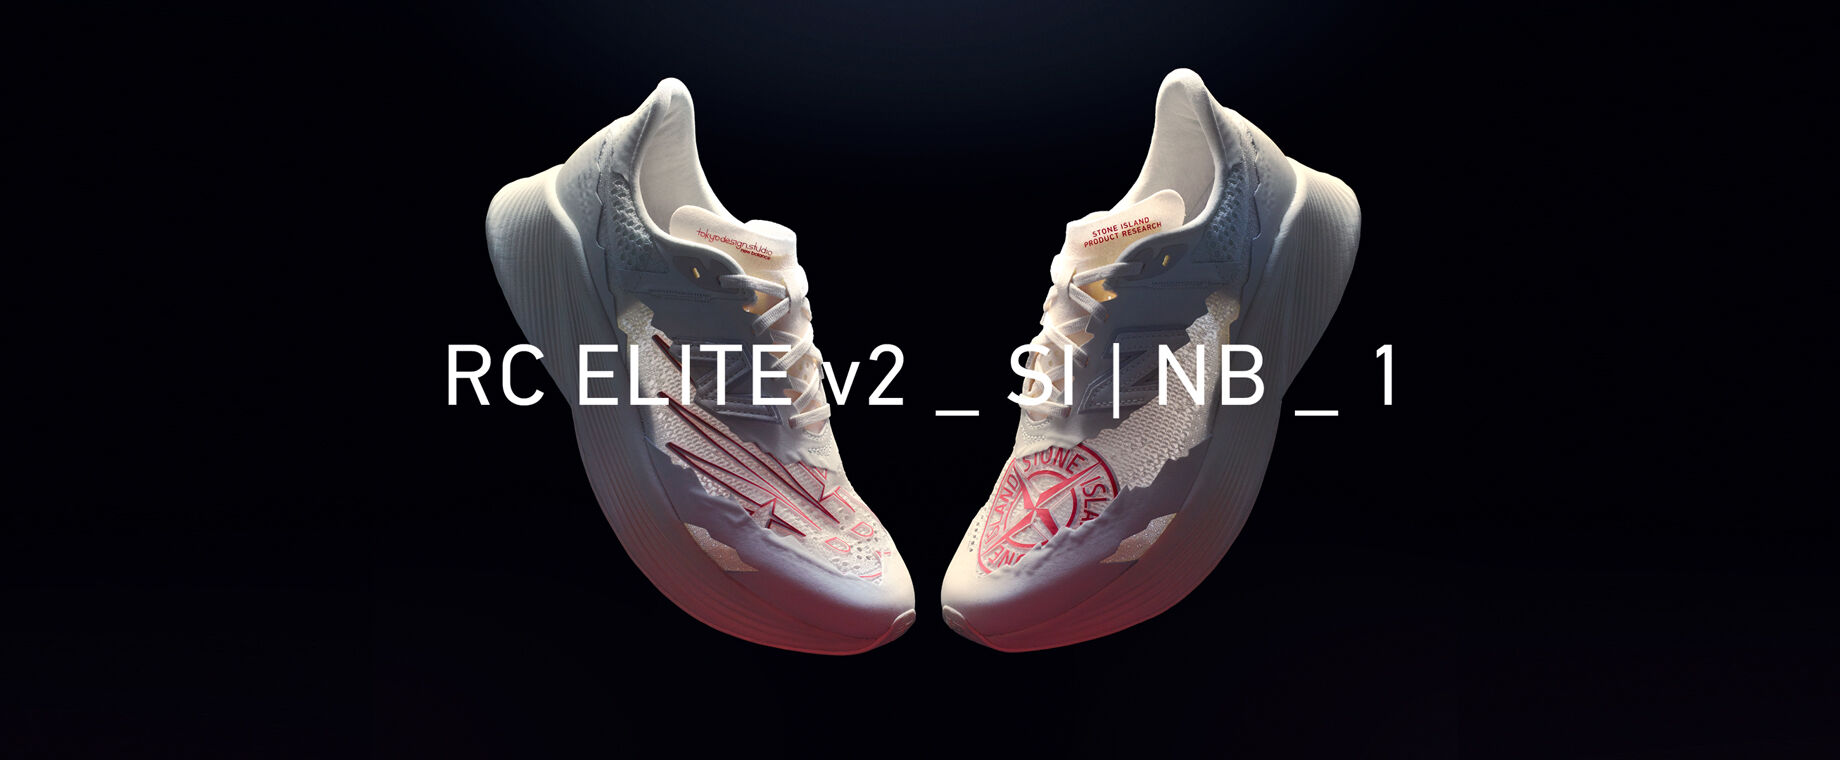 A pair of the white Stone Island x New Balance sneaker with a red Stone Island compass rose logo of black background. White text RC Elive v2_SI I NB_1